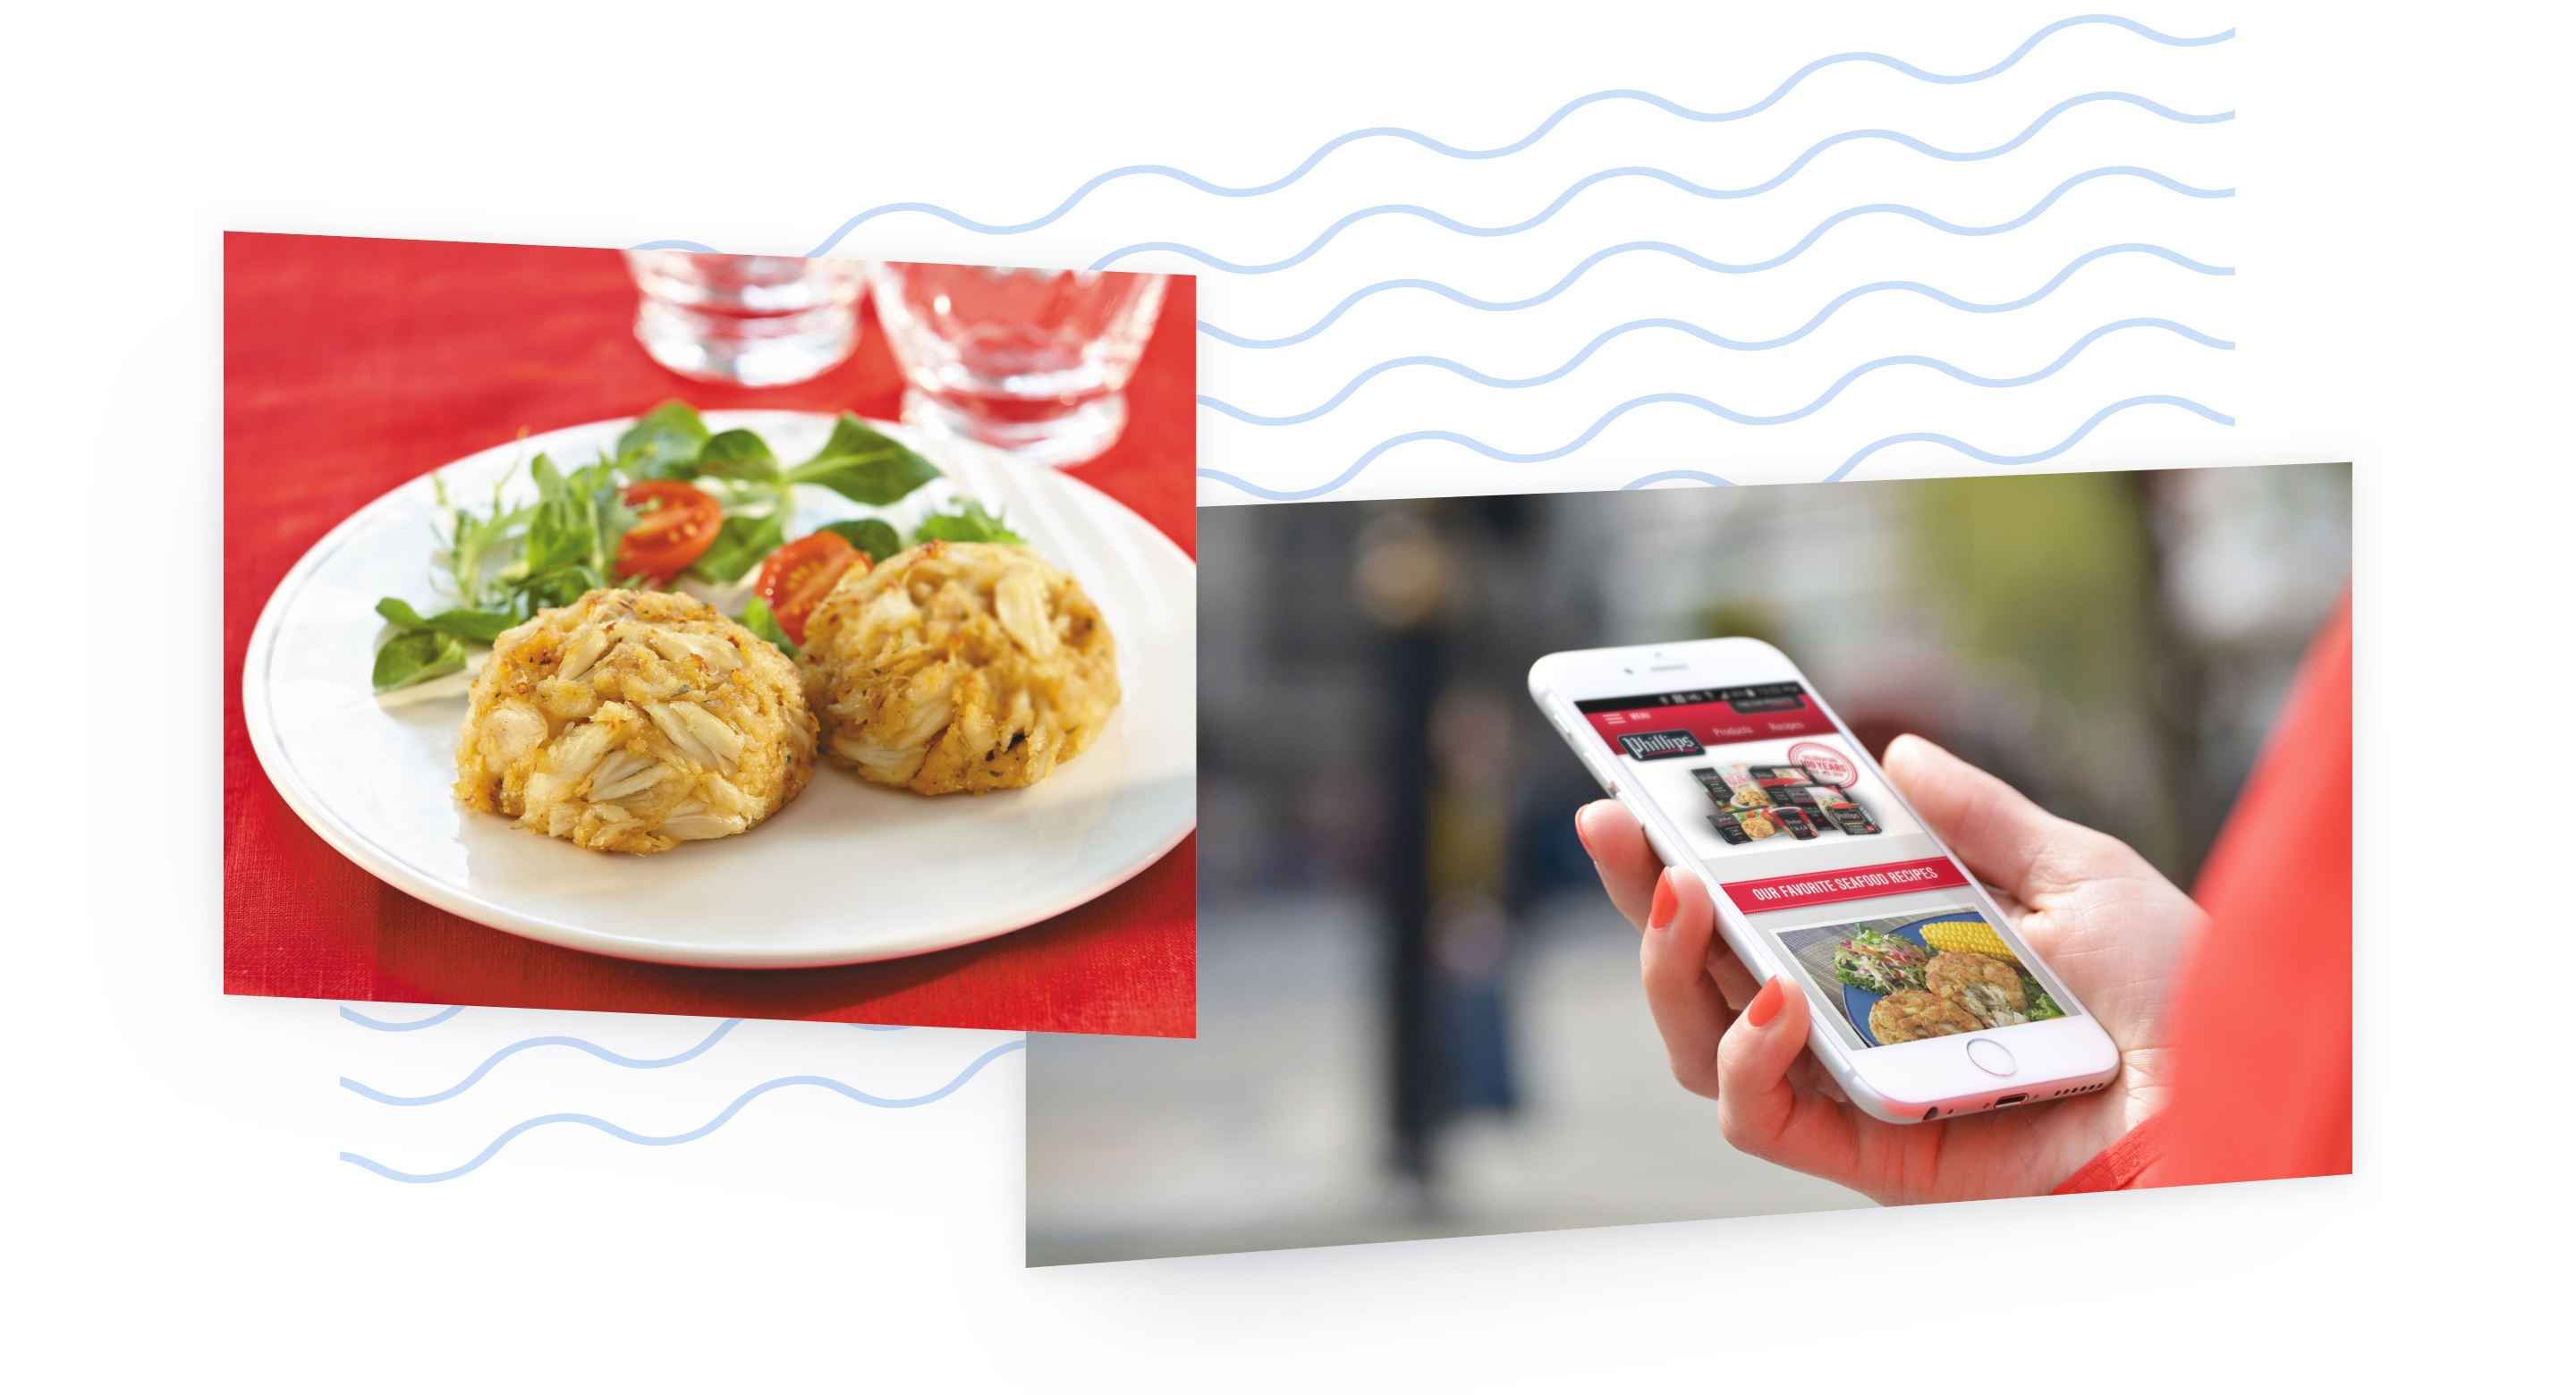 Seafood dinner plate and a person's hand holding a mobile phone with the Phillips website displayed.